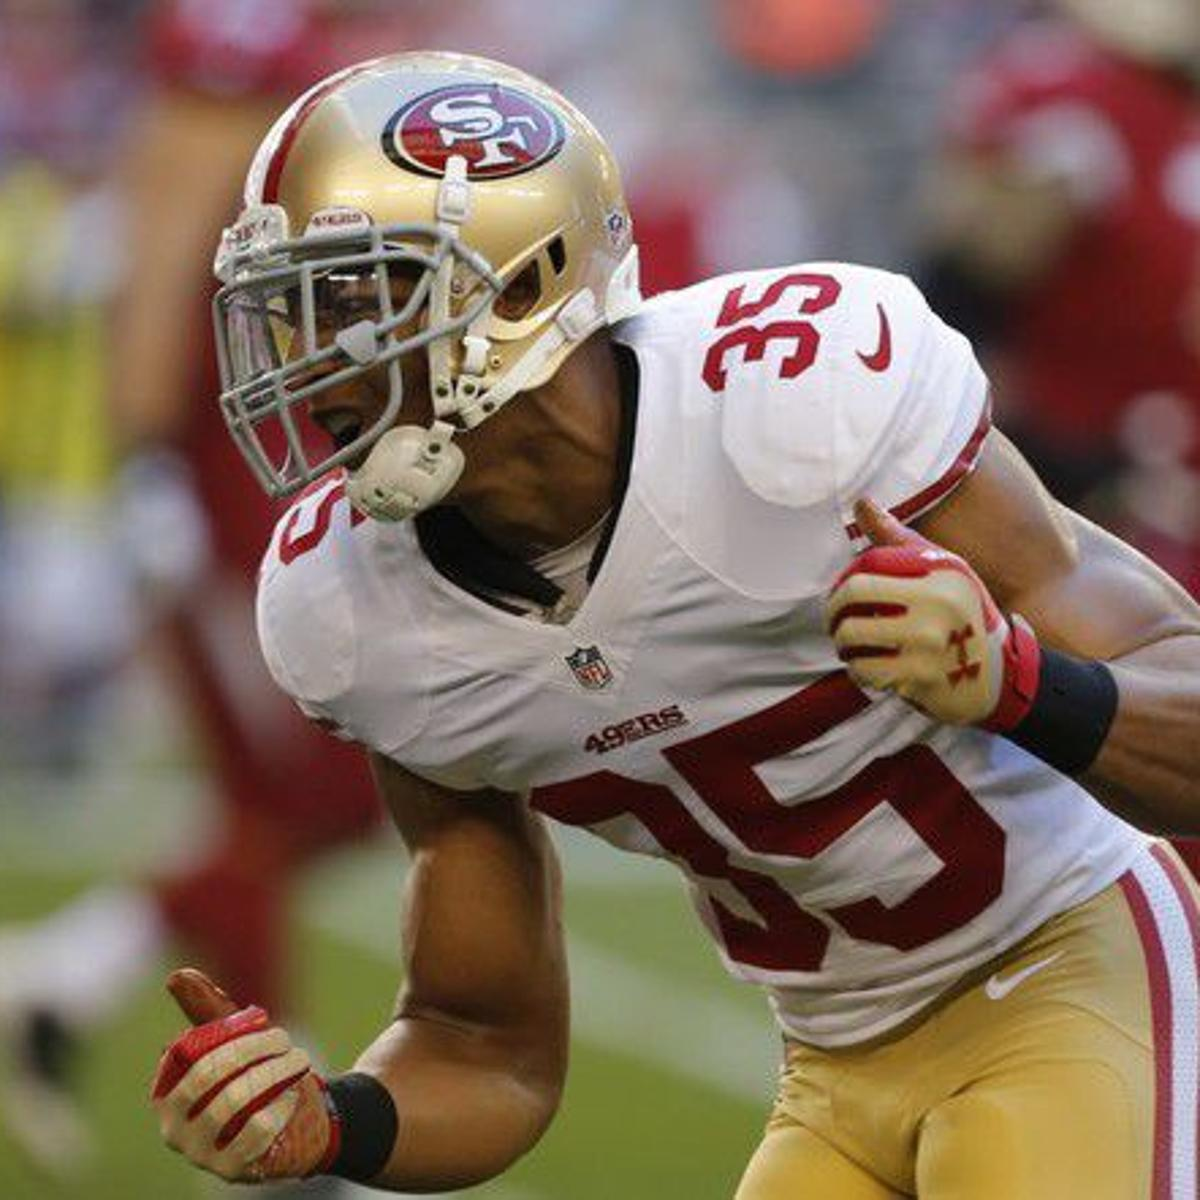 brand new d0f90 c6b4d Eric Reid, former 49ers, LSU safety, to visit the Cincinnati ...